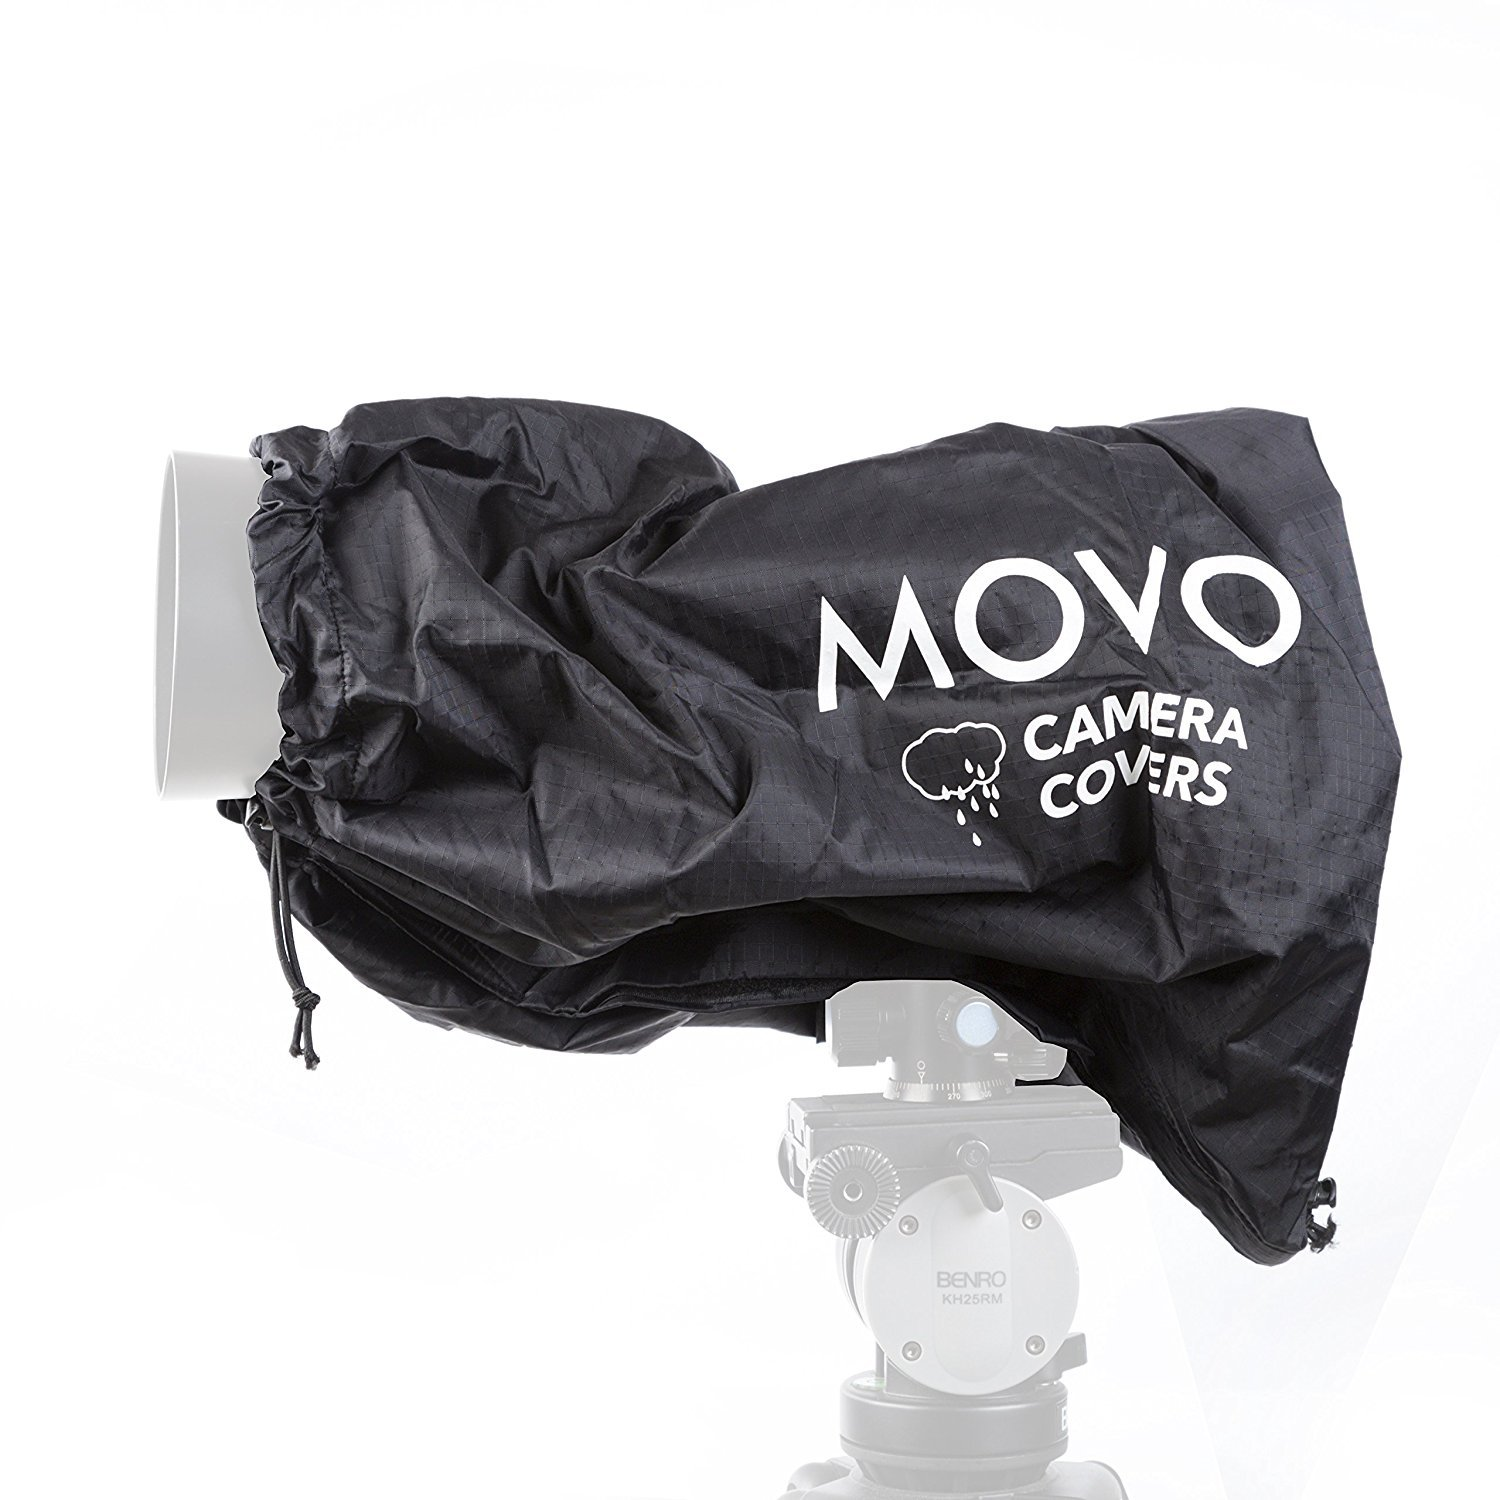 Movo CRC17 Storm Raincover Protector for DSLR Cameras, Lenses, Photographic Equipment (Small Size: 17 x 14.5) by Movo